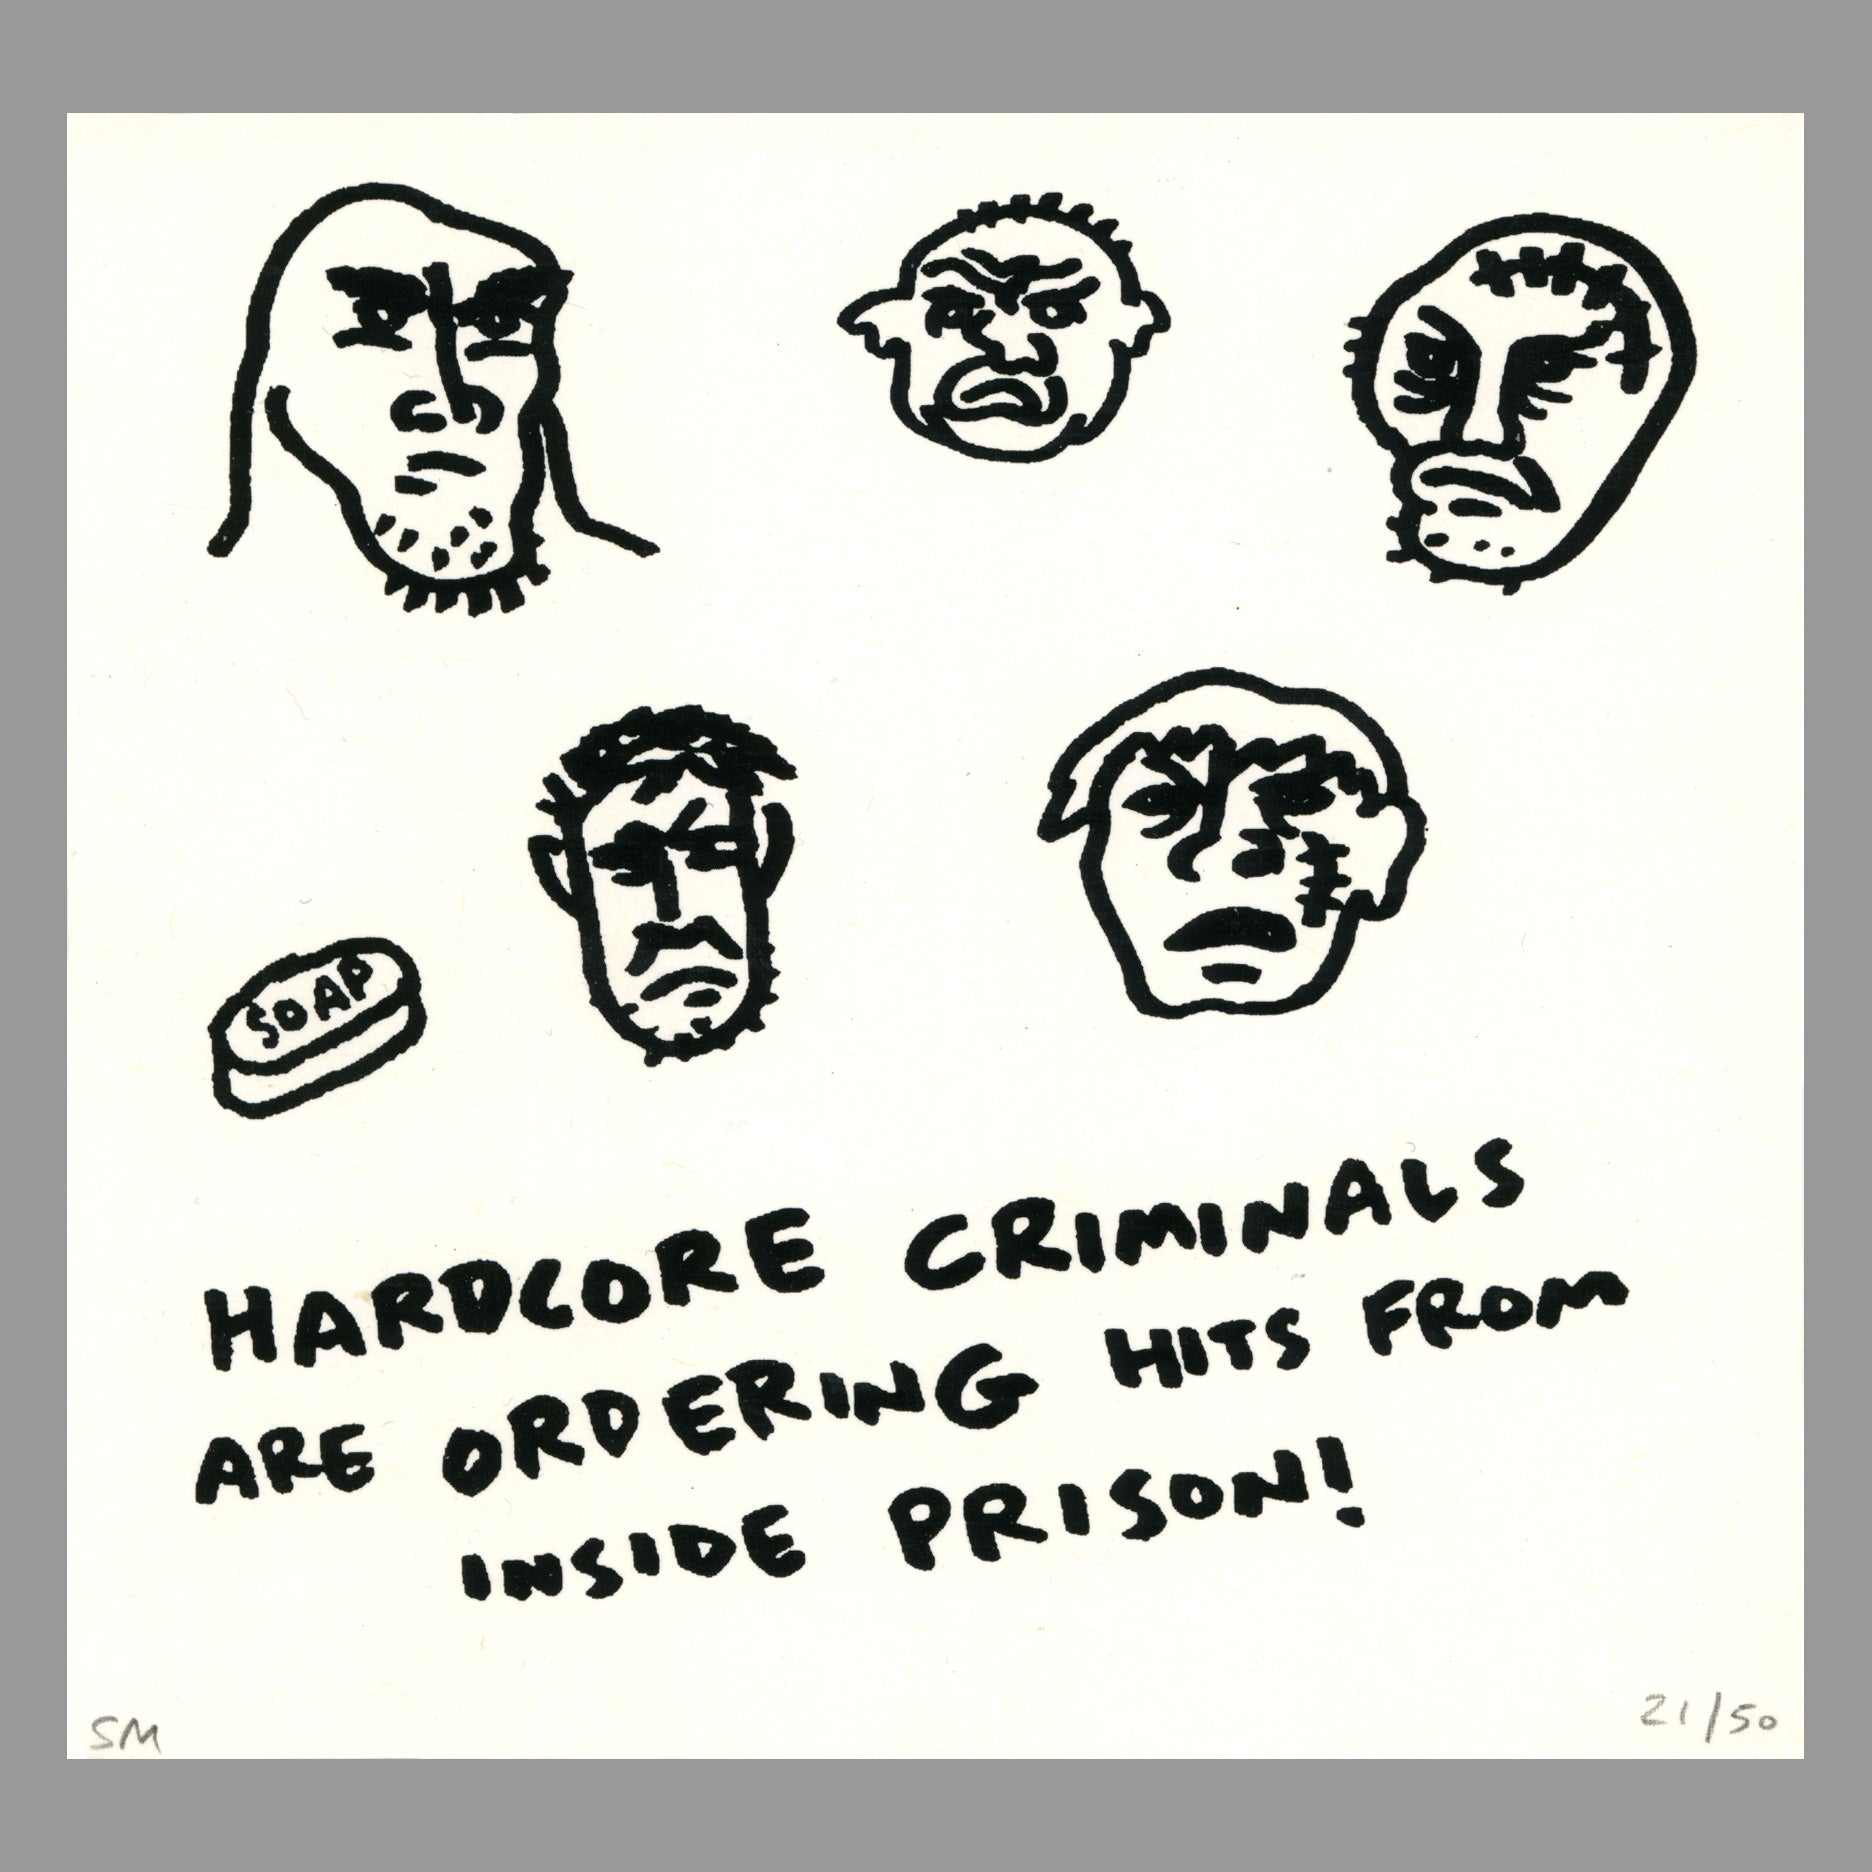 Hardcore Criminals by Sam McPheeters - Monoroid